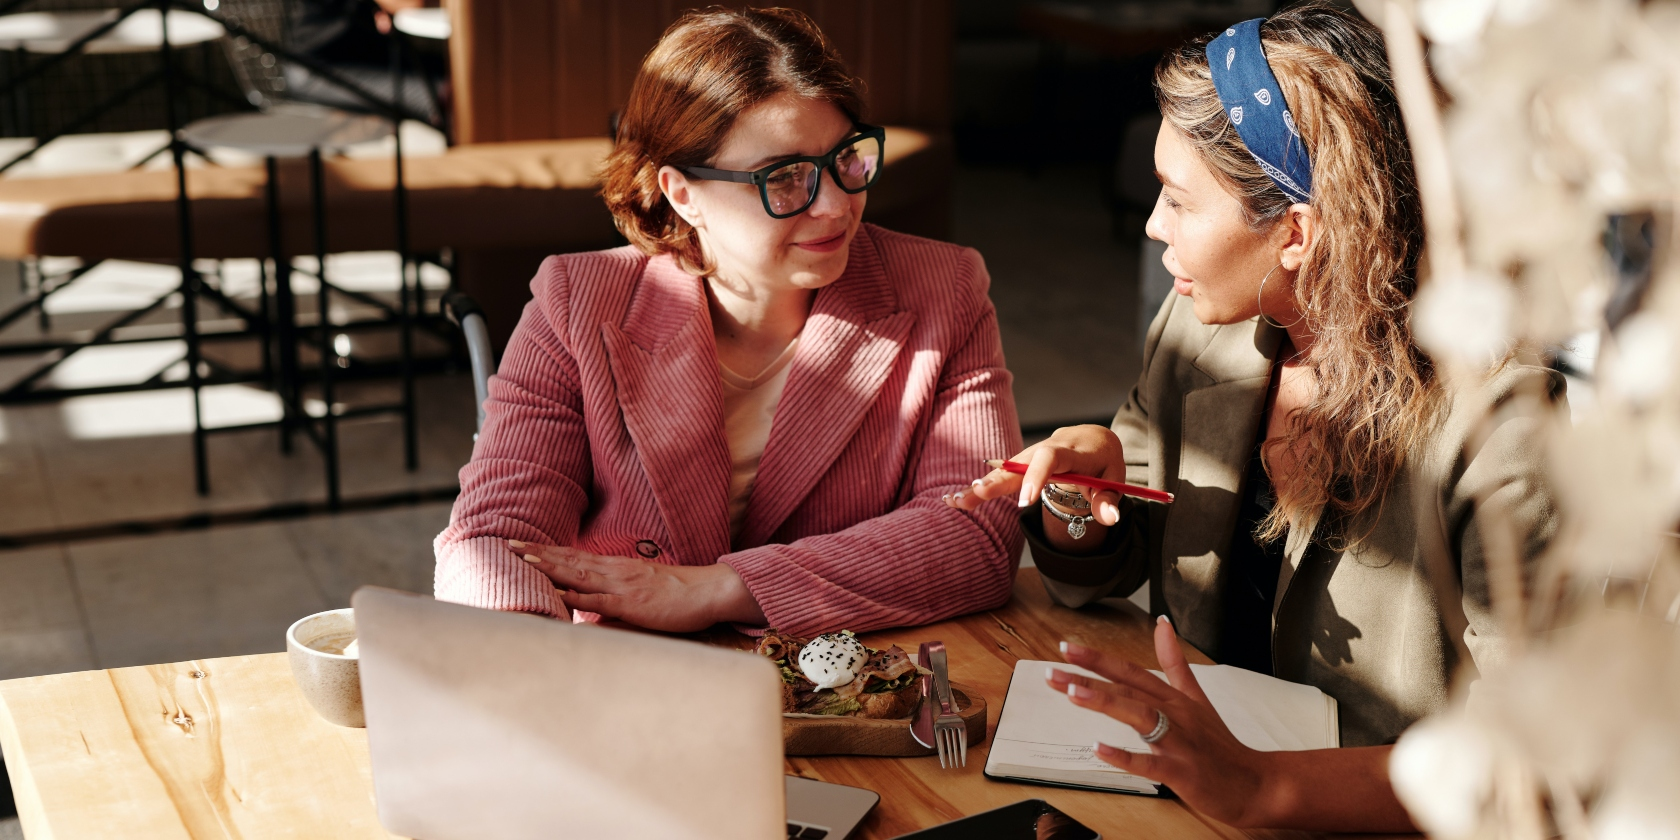 Two females sat together talking with a laptop.